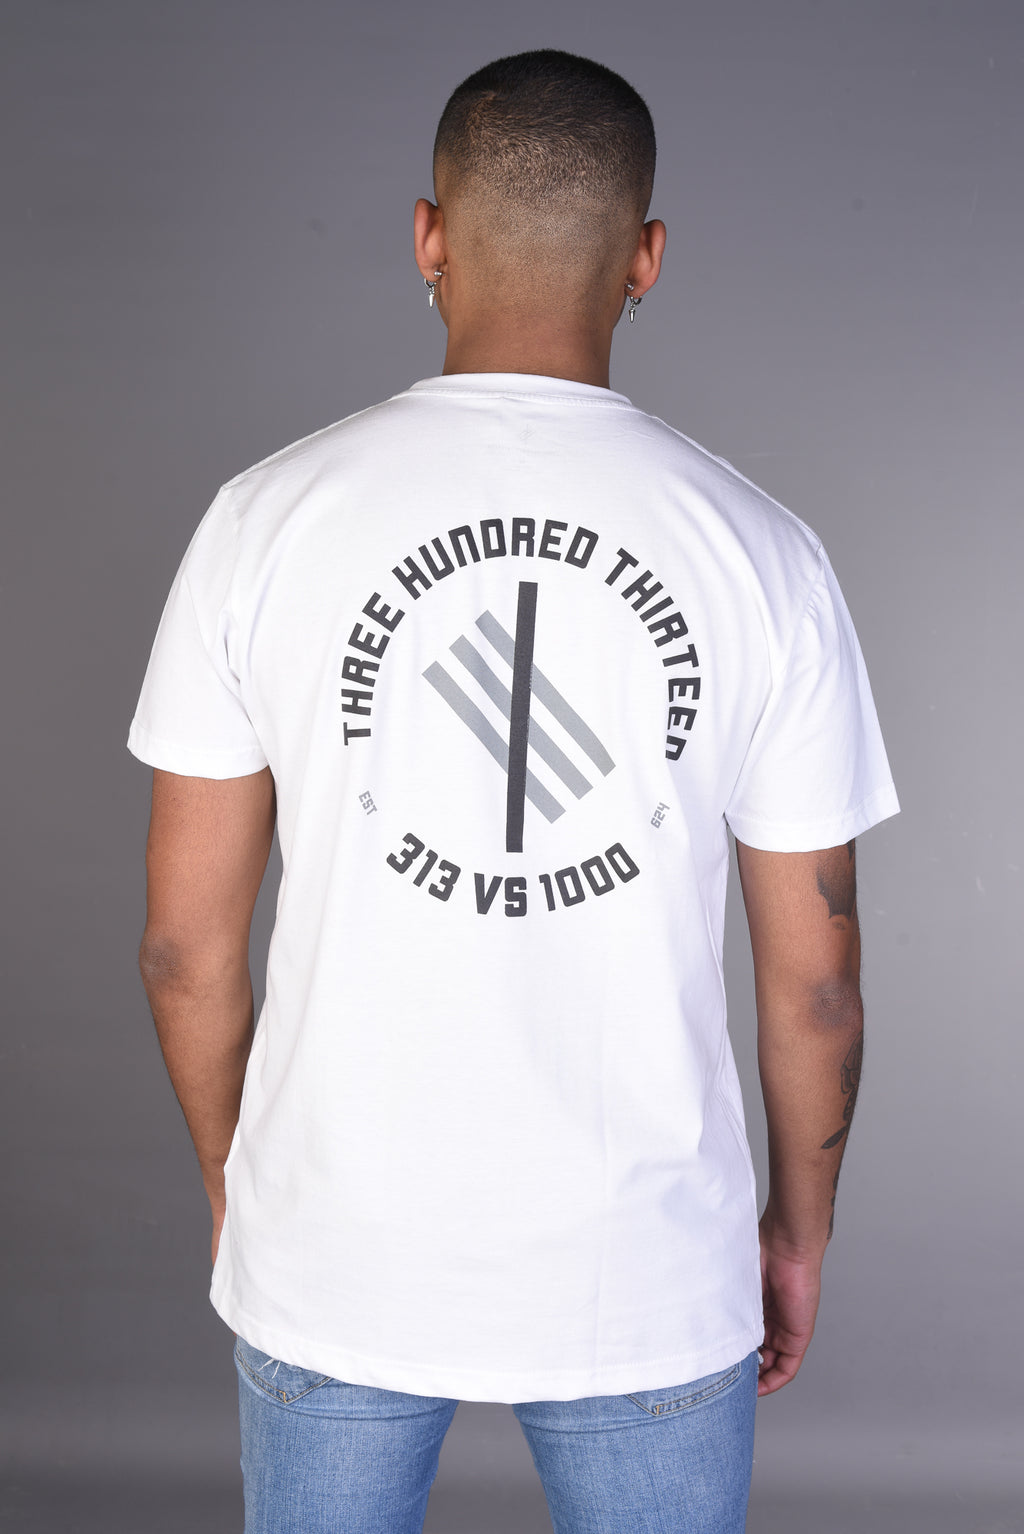 313 vs 1000 Symbolic Logo T Shirt - White